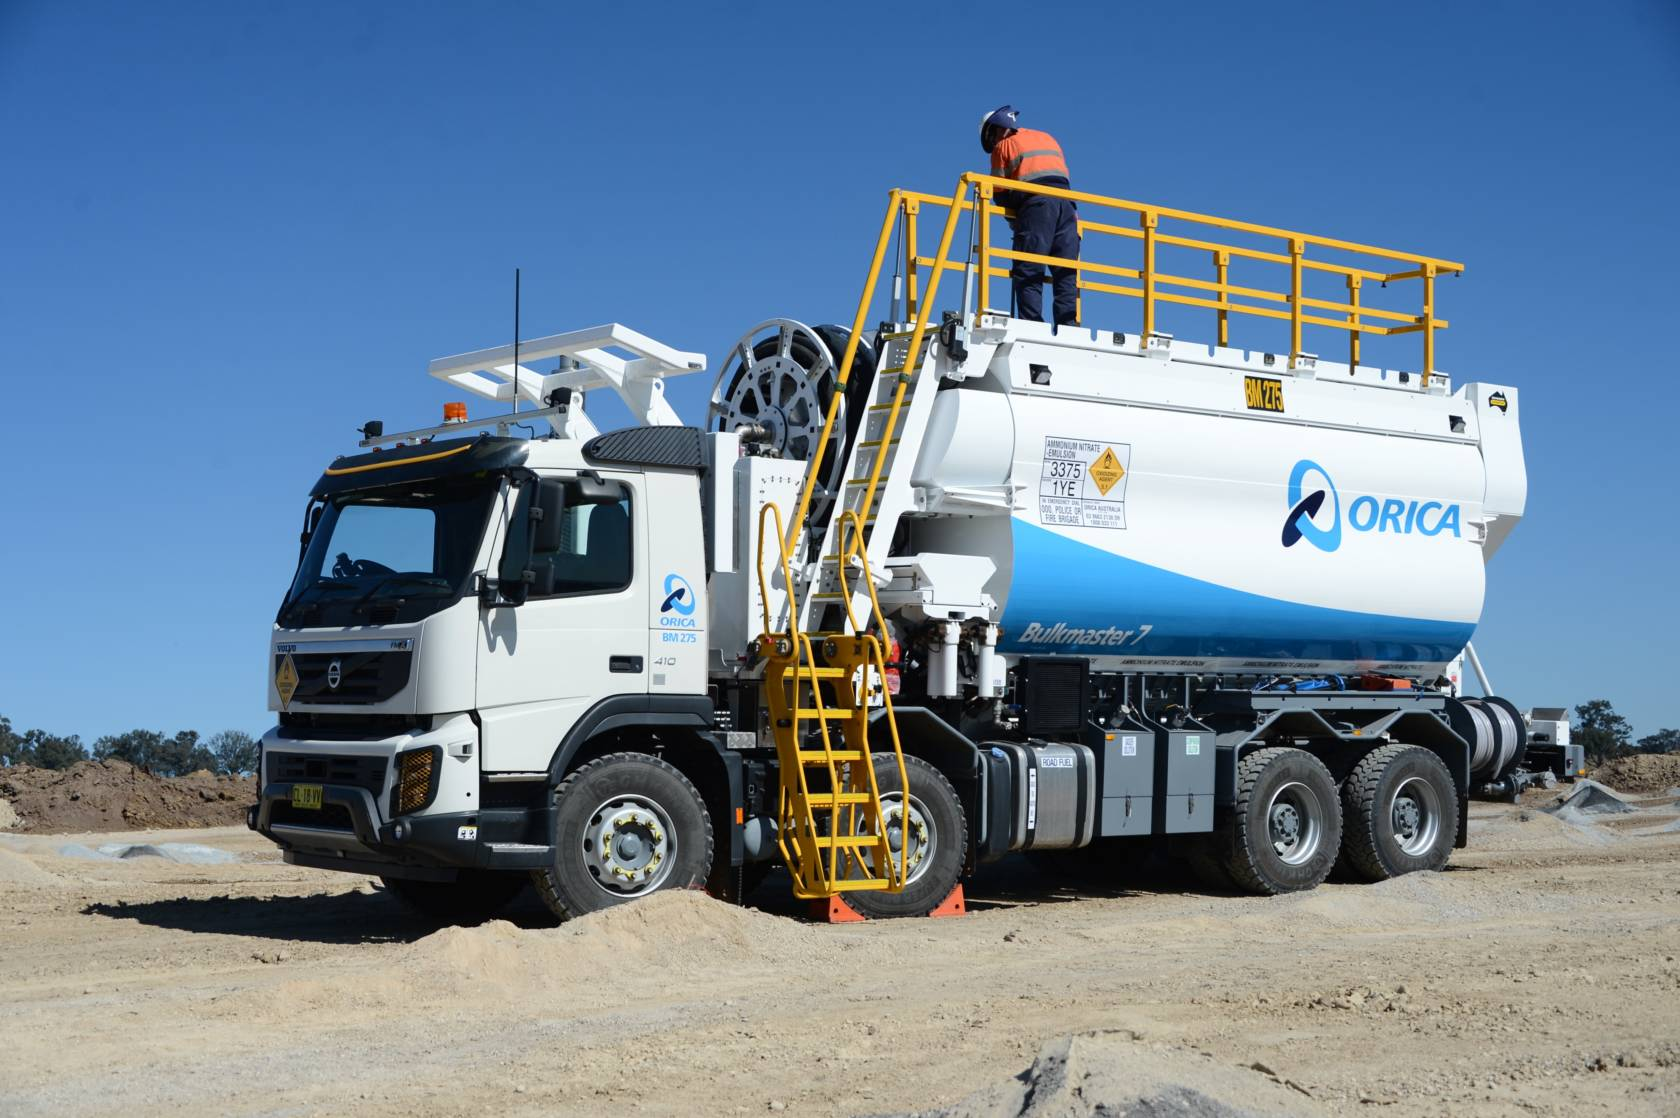 Orica next generation Bulkmaster™ 7 explosives delivery system